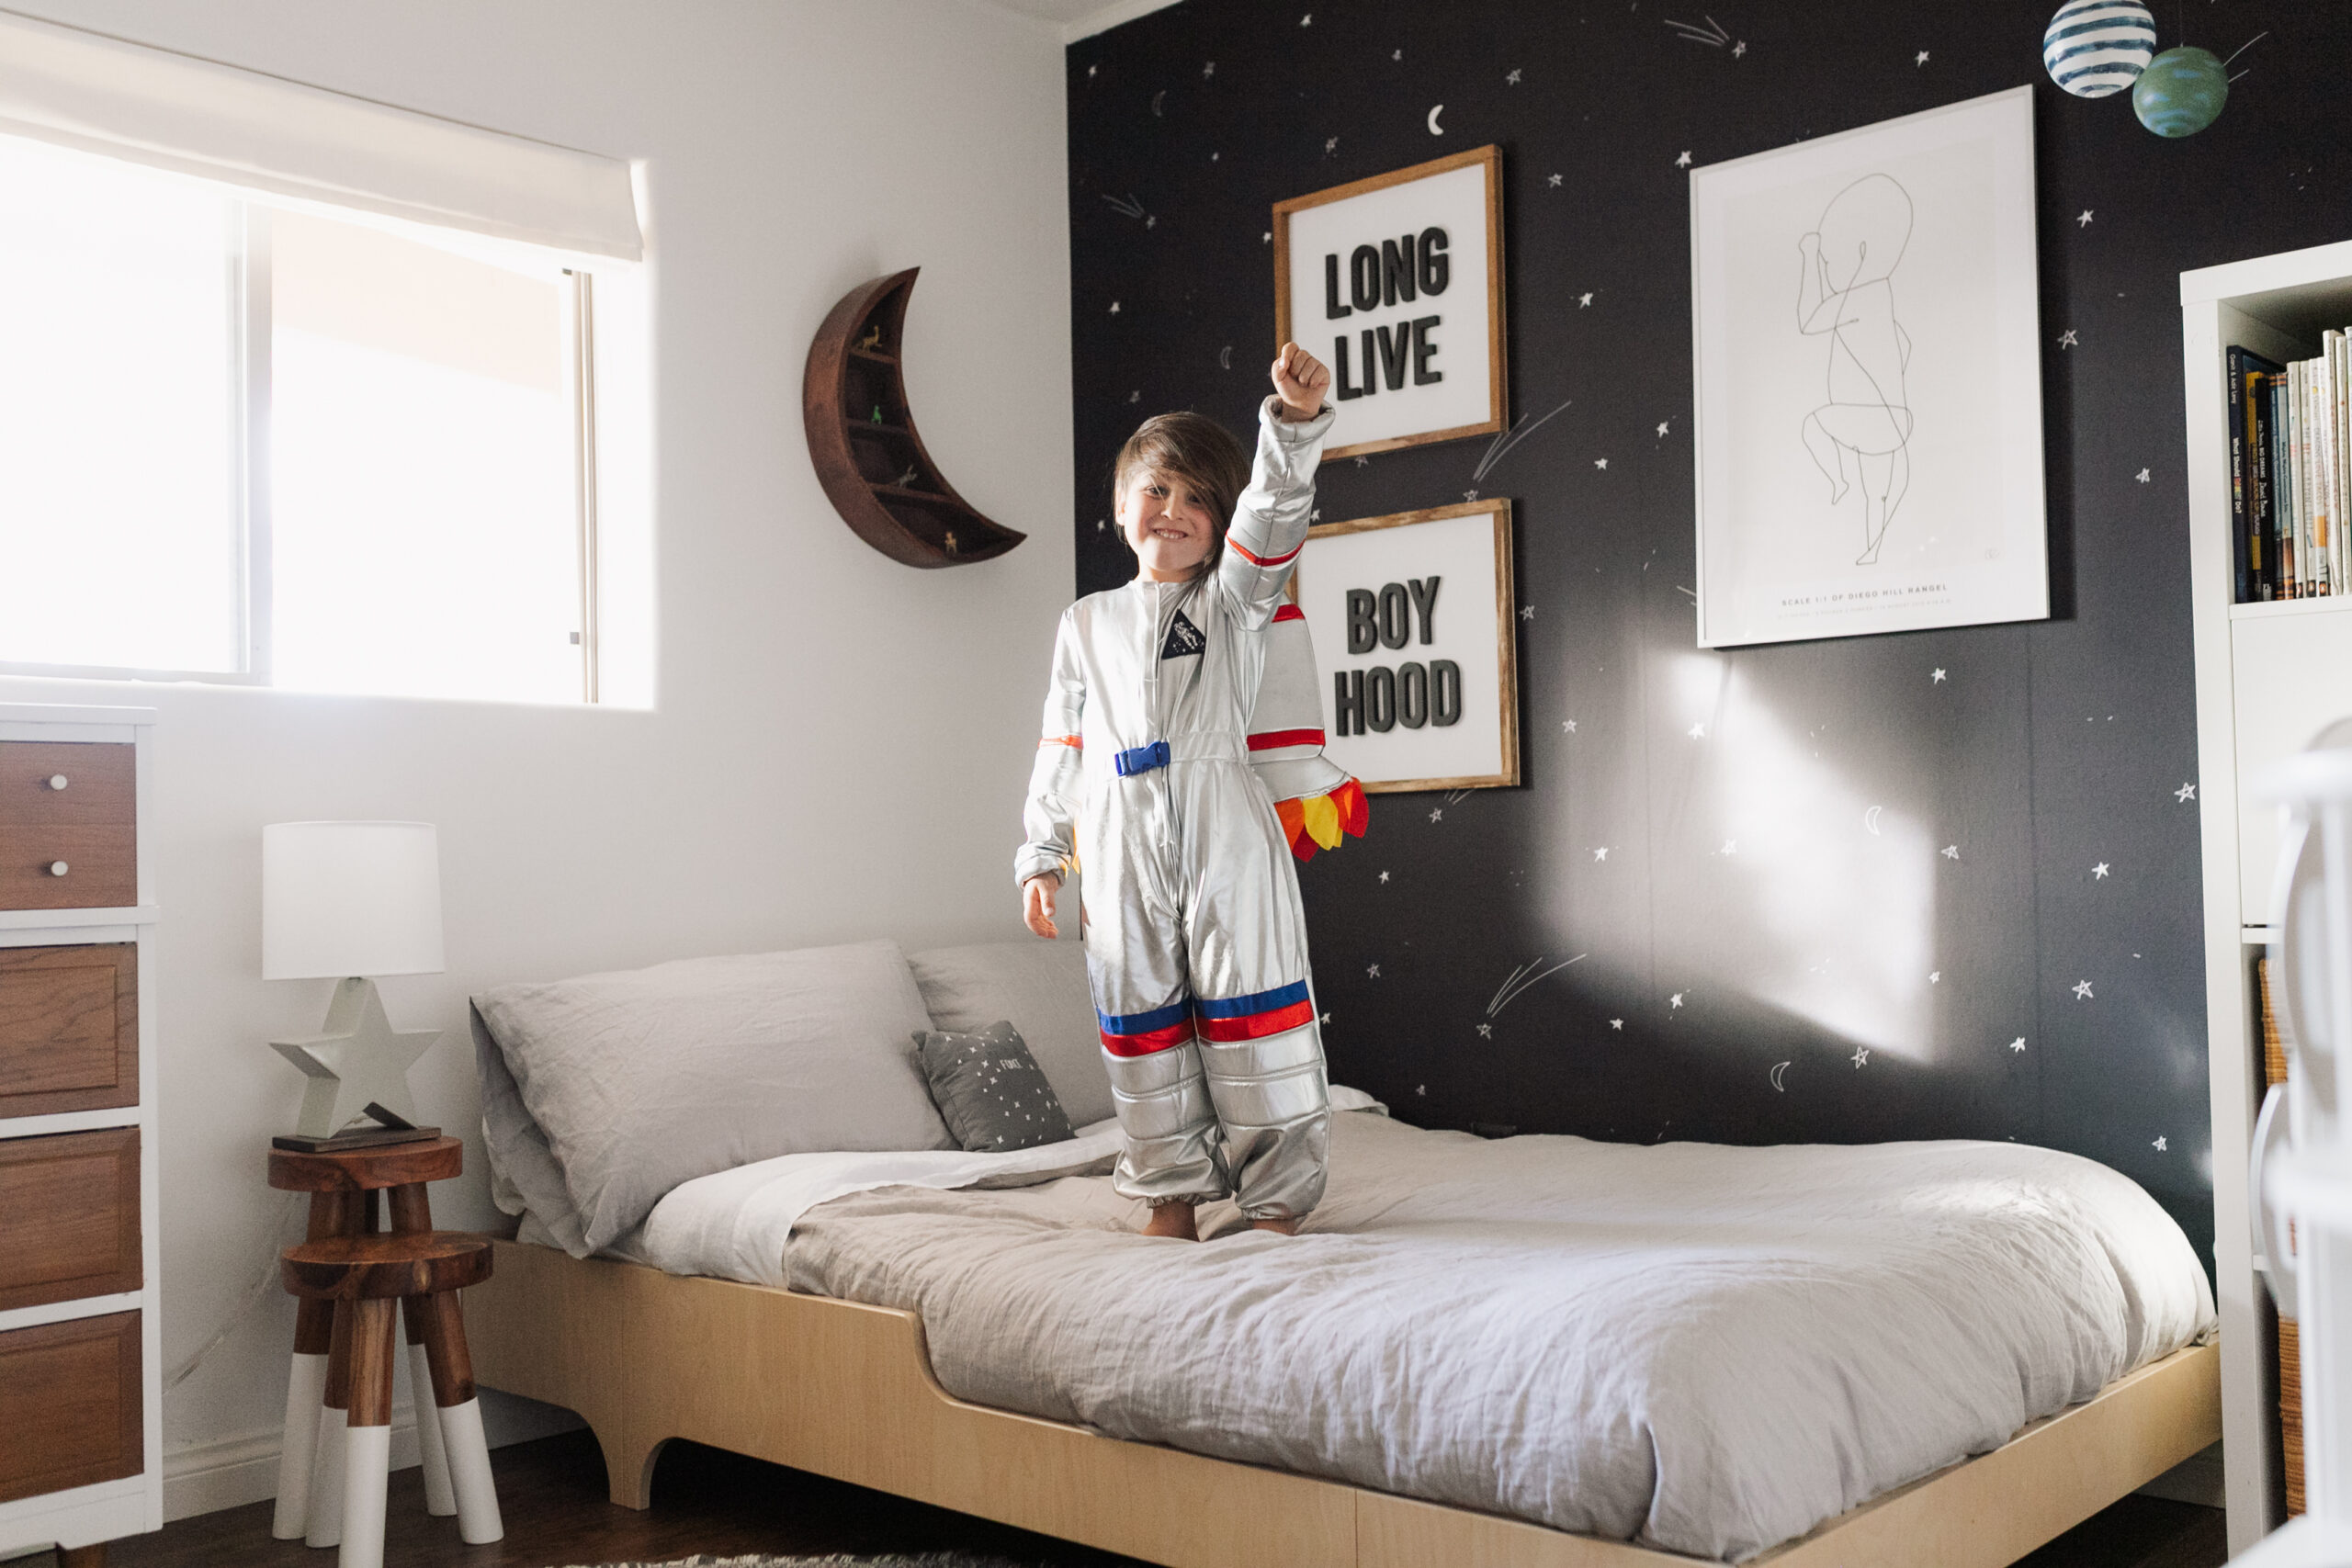 long live boyhood with this cute little future astronaut! blast off with his space inspired room details today on thelovedesignedlife.com #theldlhome #thelovedesignedlife #astronaut #kidsroom #bigboyroom